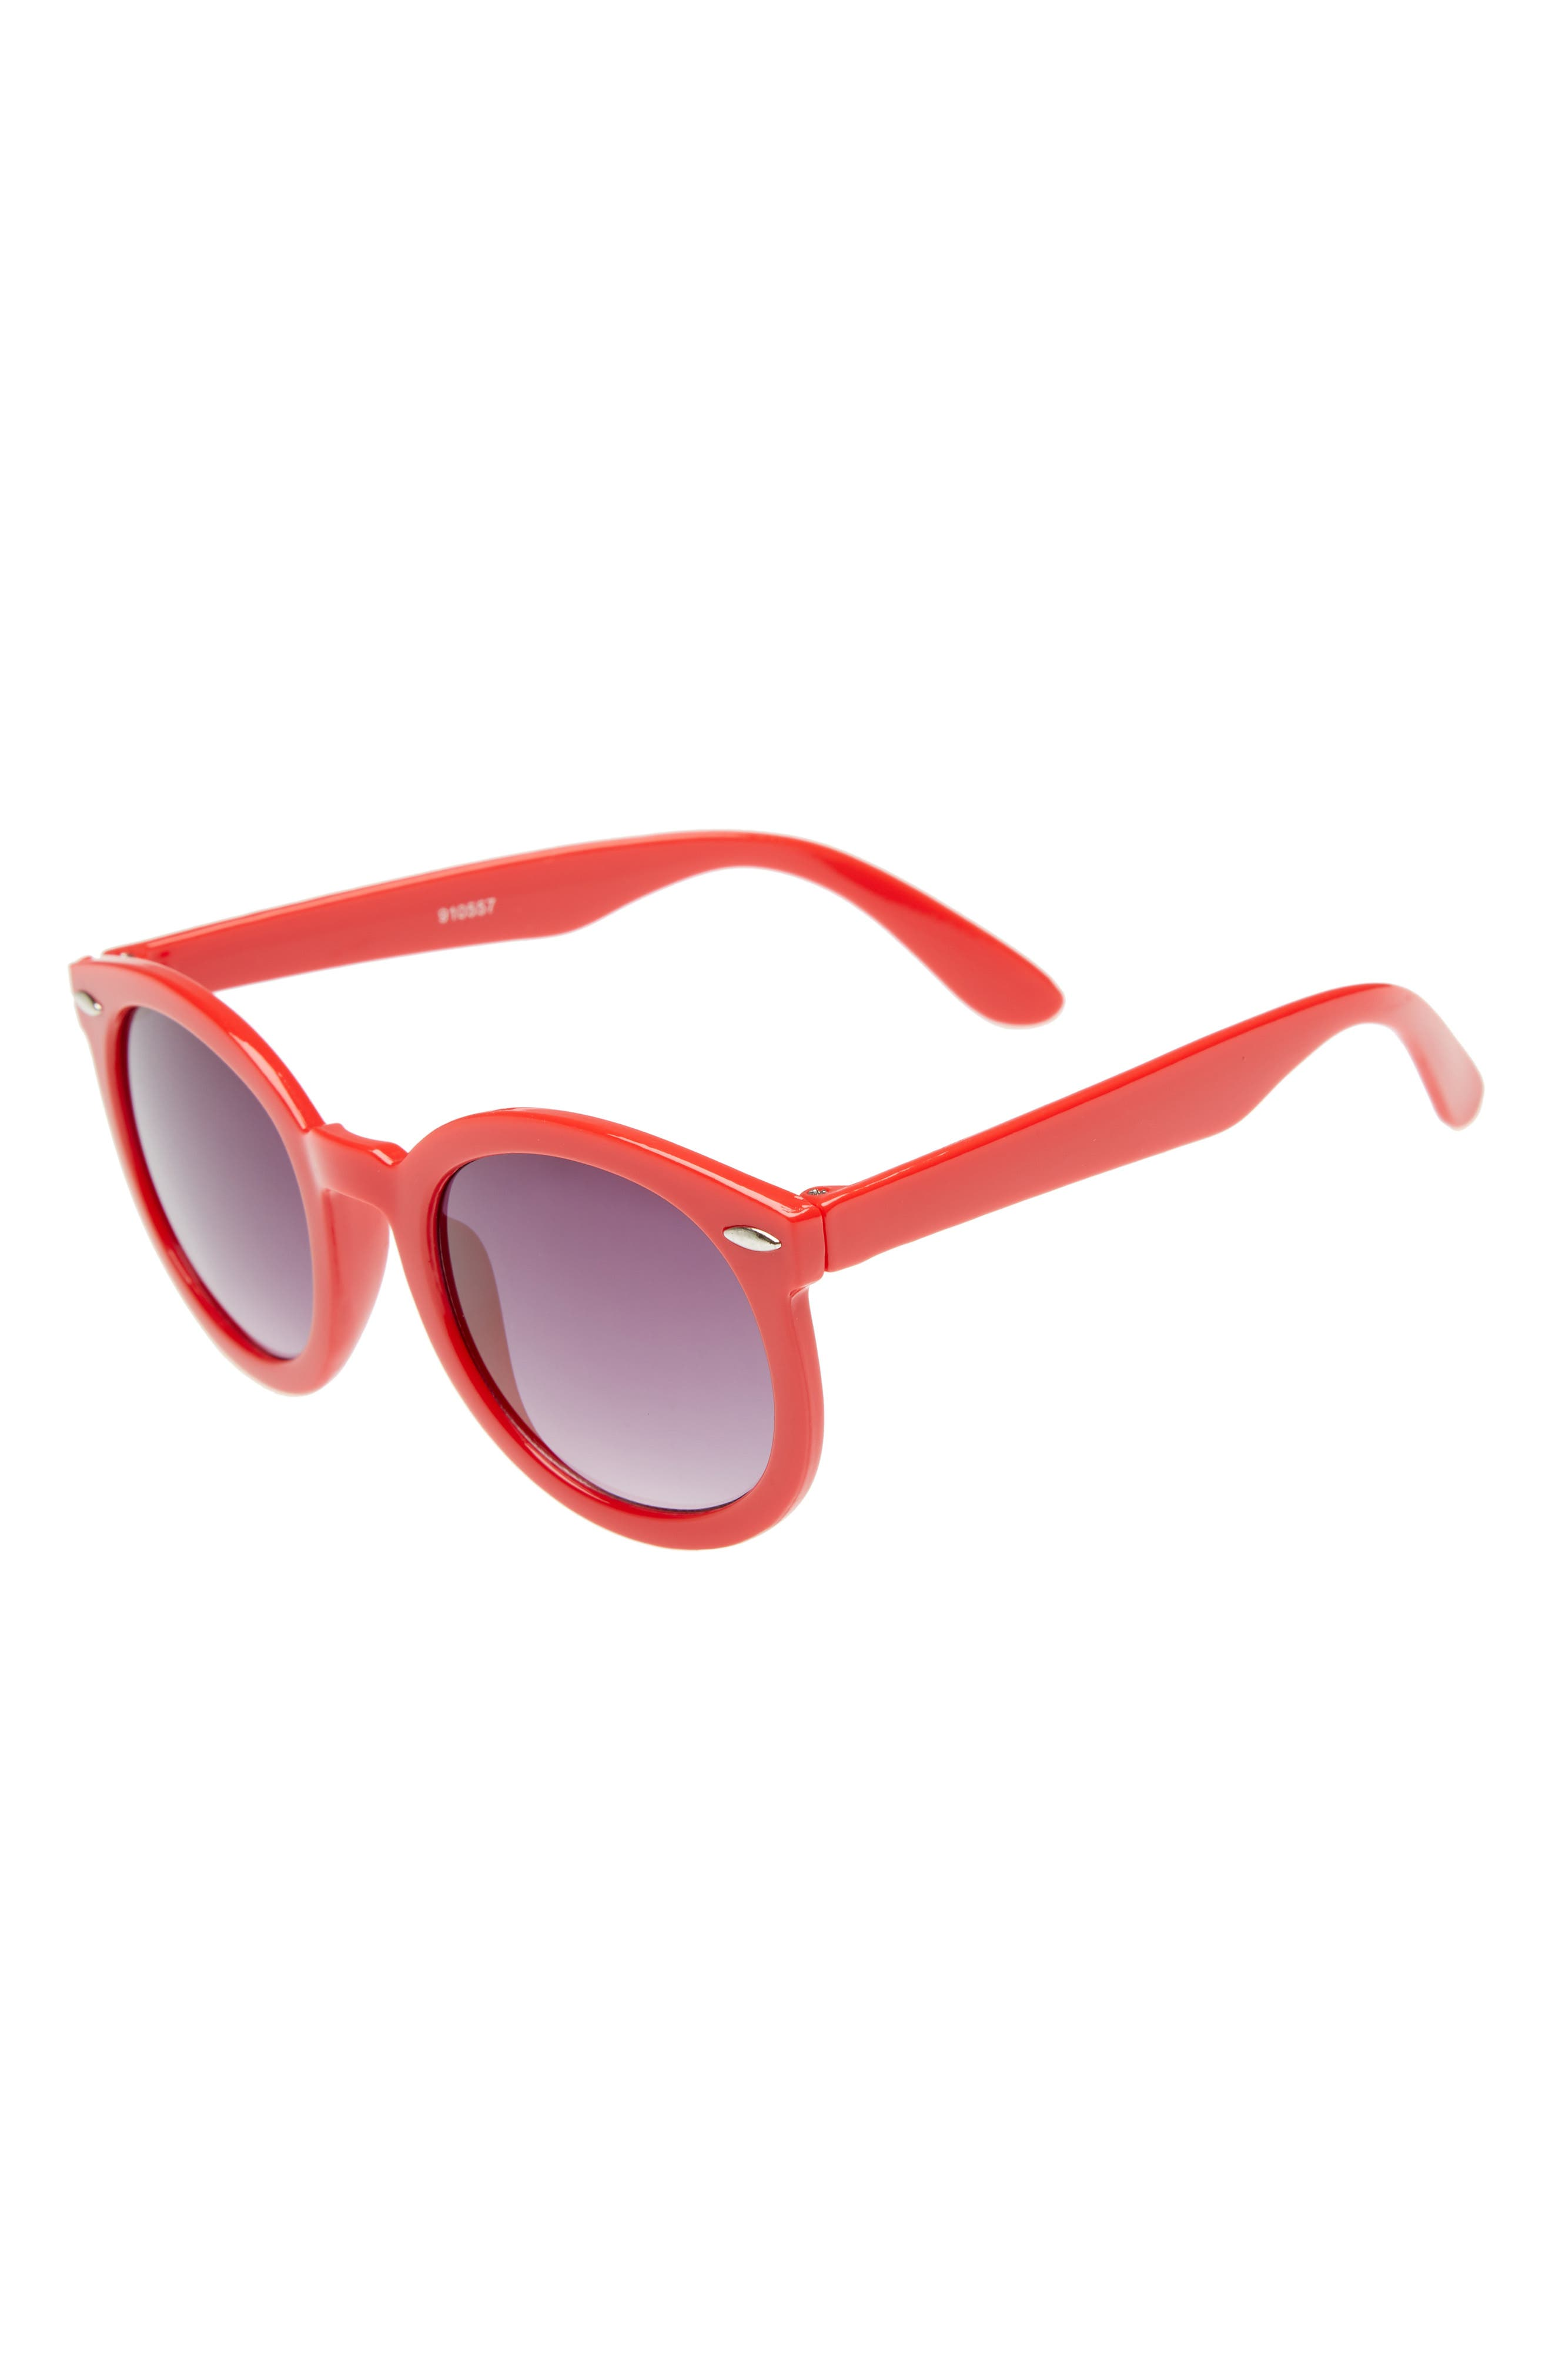 Round Sunglasses,                             Main thumbnail 1, color,                             600